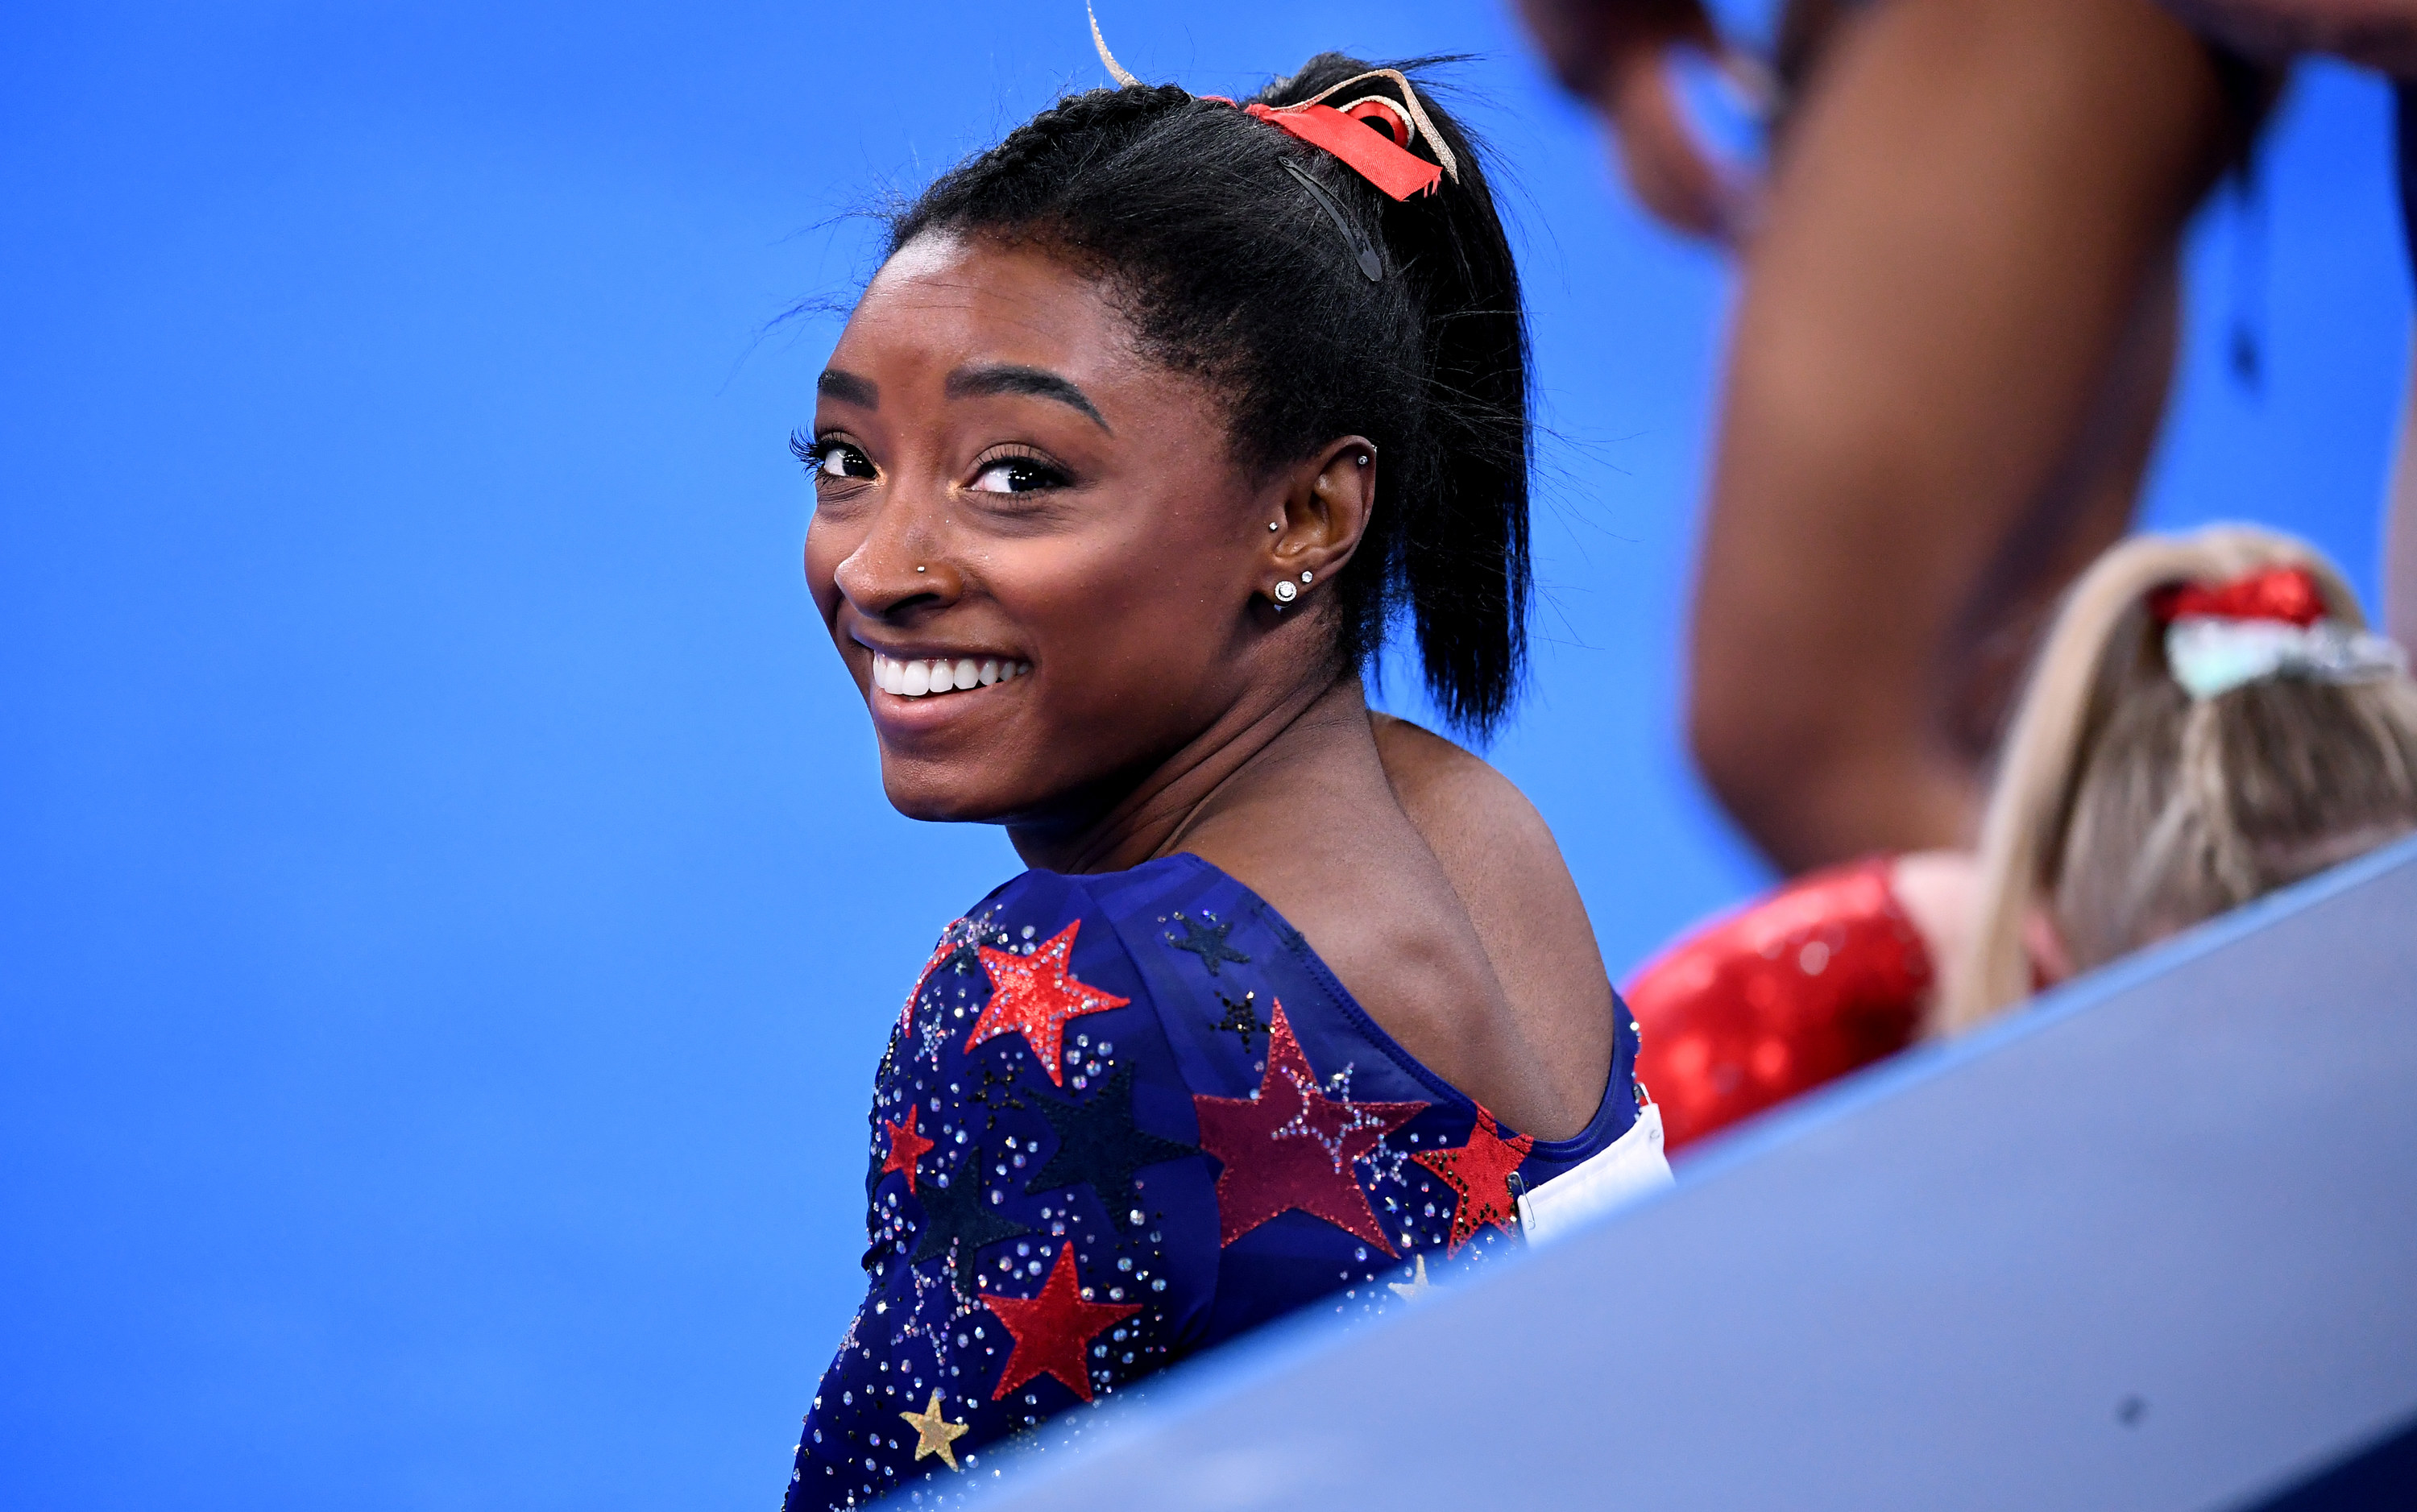 Simone Biles is pictured smiling during the women's qualifying rounds at the 2020 Tokyo Olympics